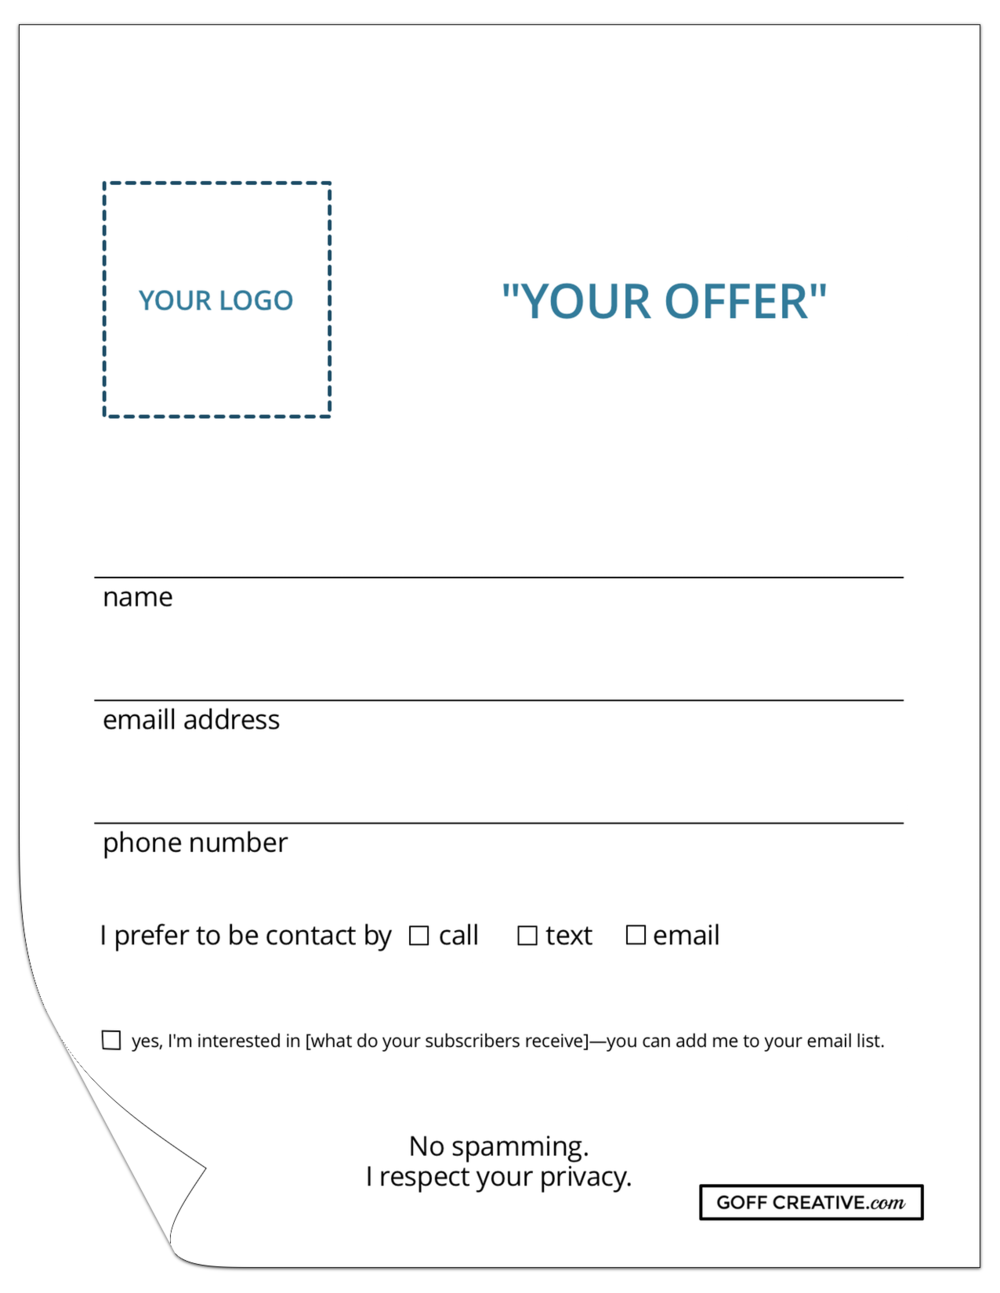 Sample of the Perfect Vendor Event Entry Form — www.goffcreative.com